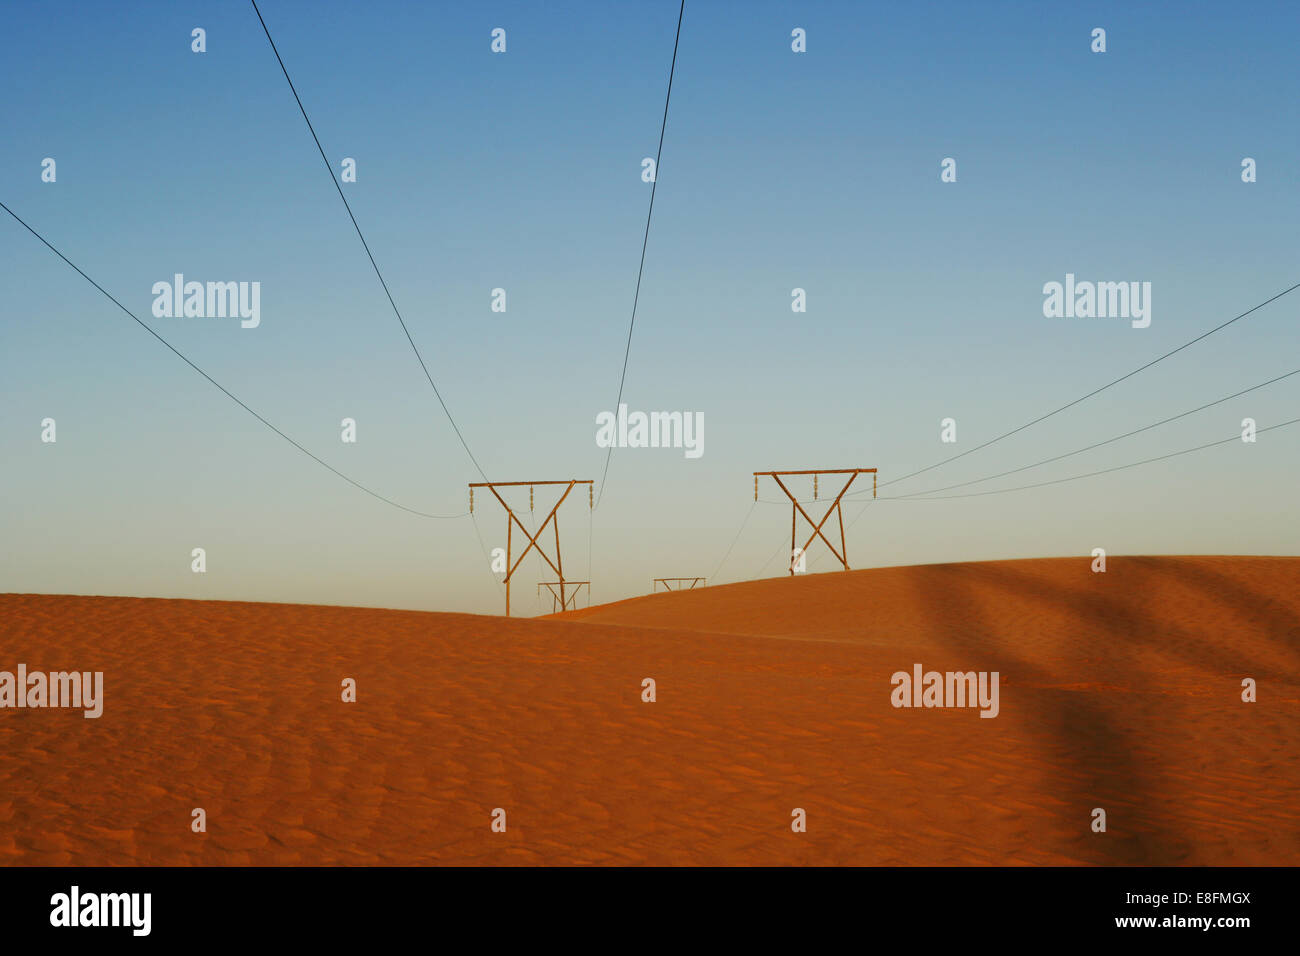 Namibia, Power lines in desert - Stock Image